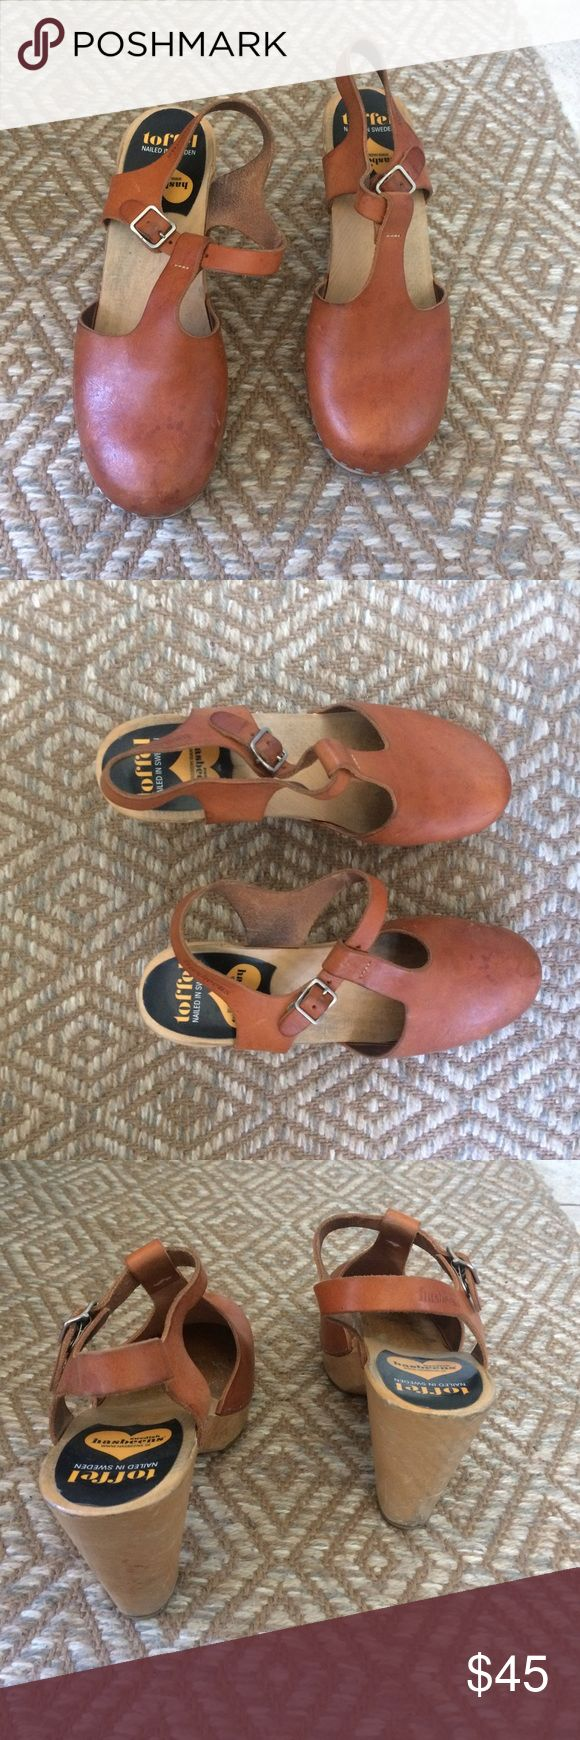 Swedish Hasbeens t strap Mary Jane Swedish Hasbeens t strap Mary Jane. A few spots as pictured. Swedish Hasbeens Shoes